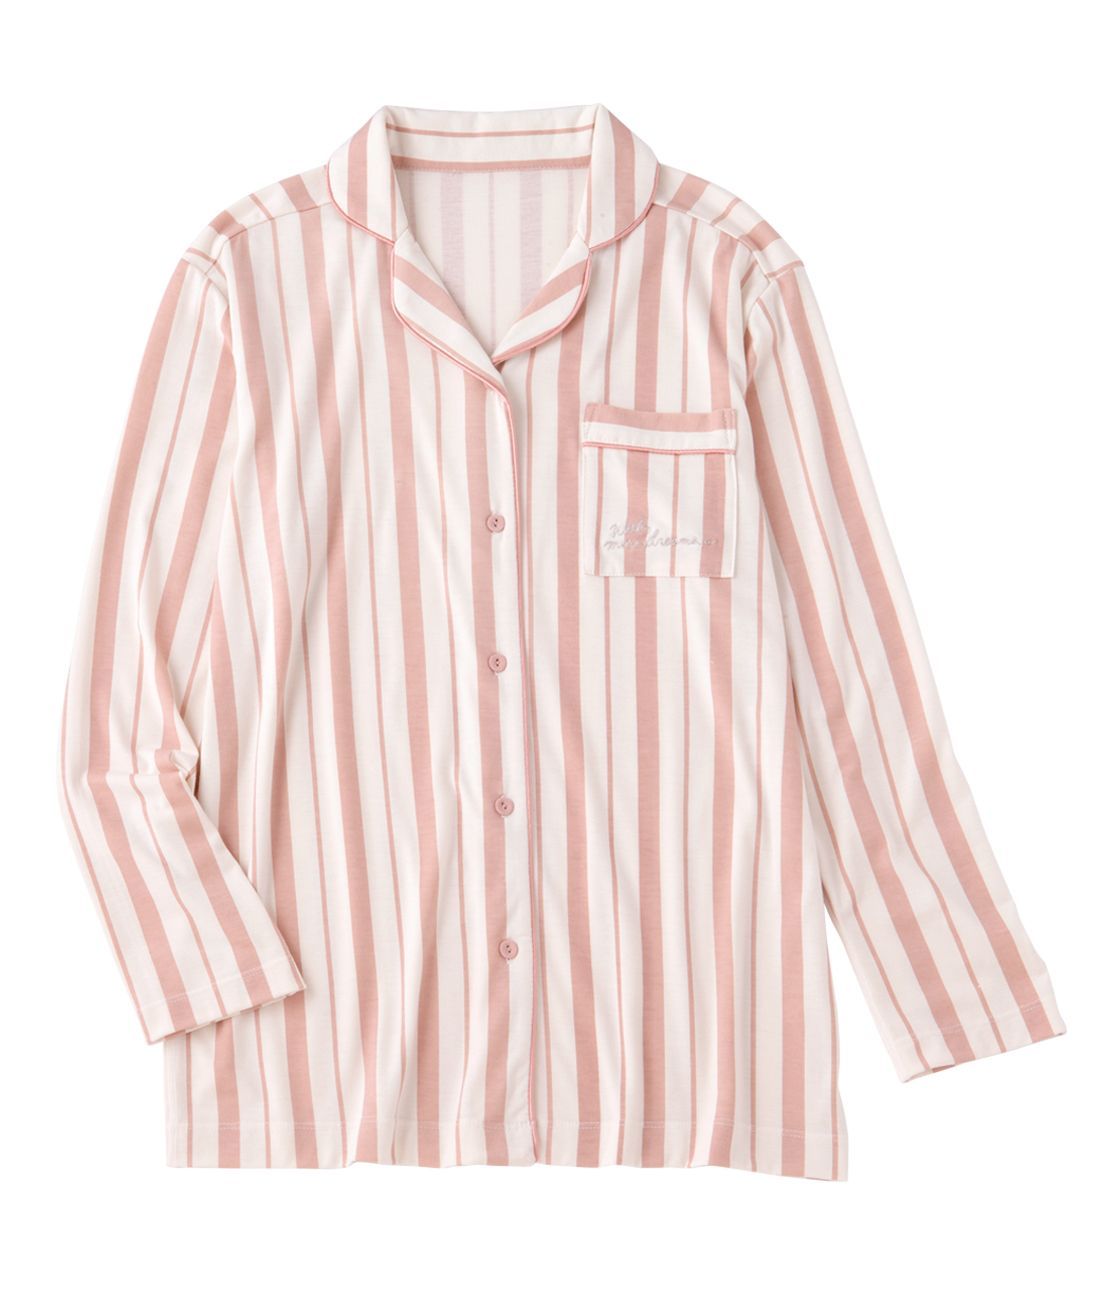 PICK & MIX long-sleeved pajama shirt